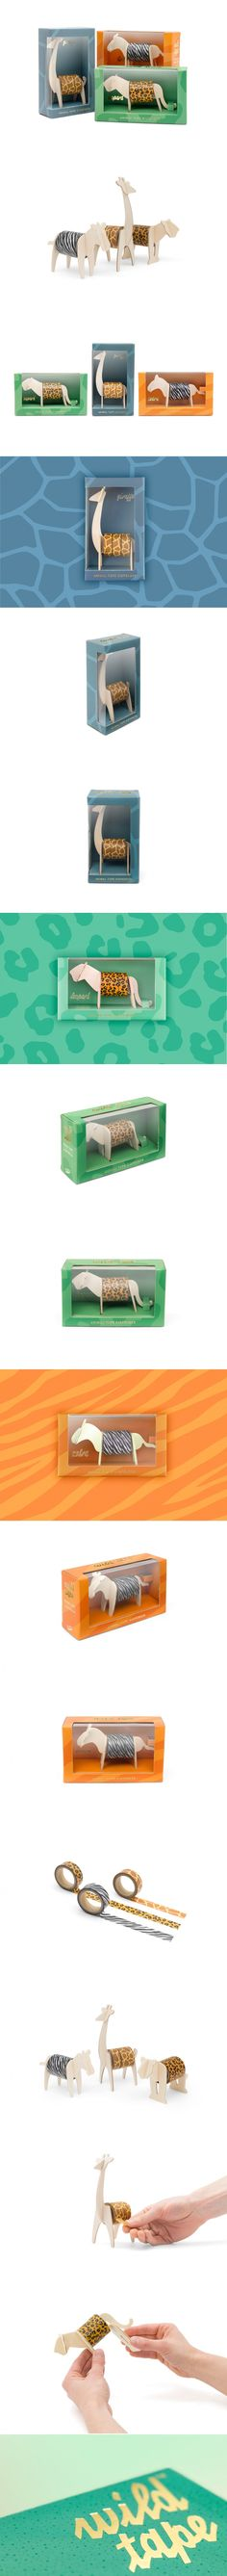 """Get """"Wild"""" In The Office With These Adorable Tape Rolls — The Dieline 